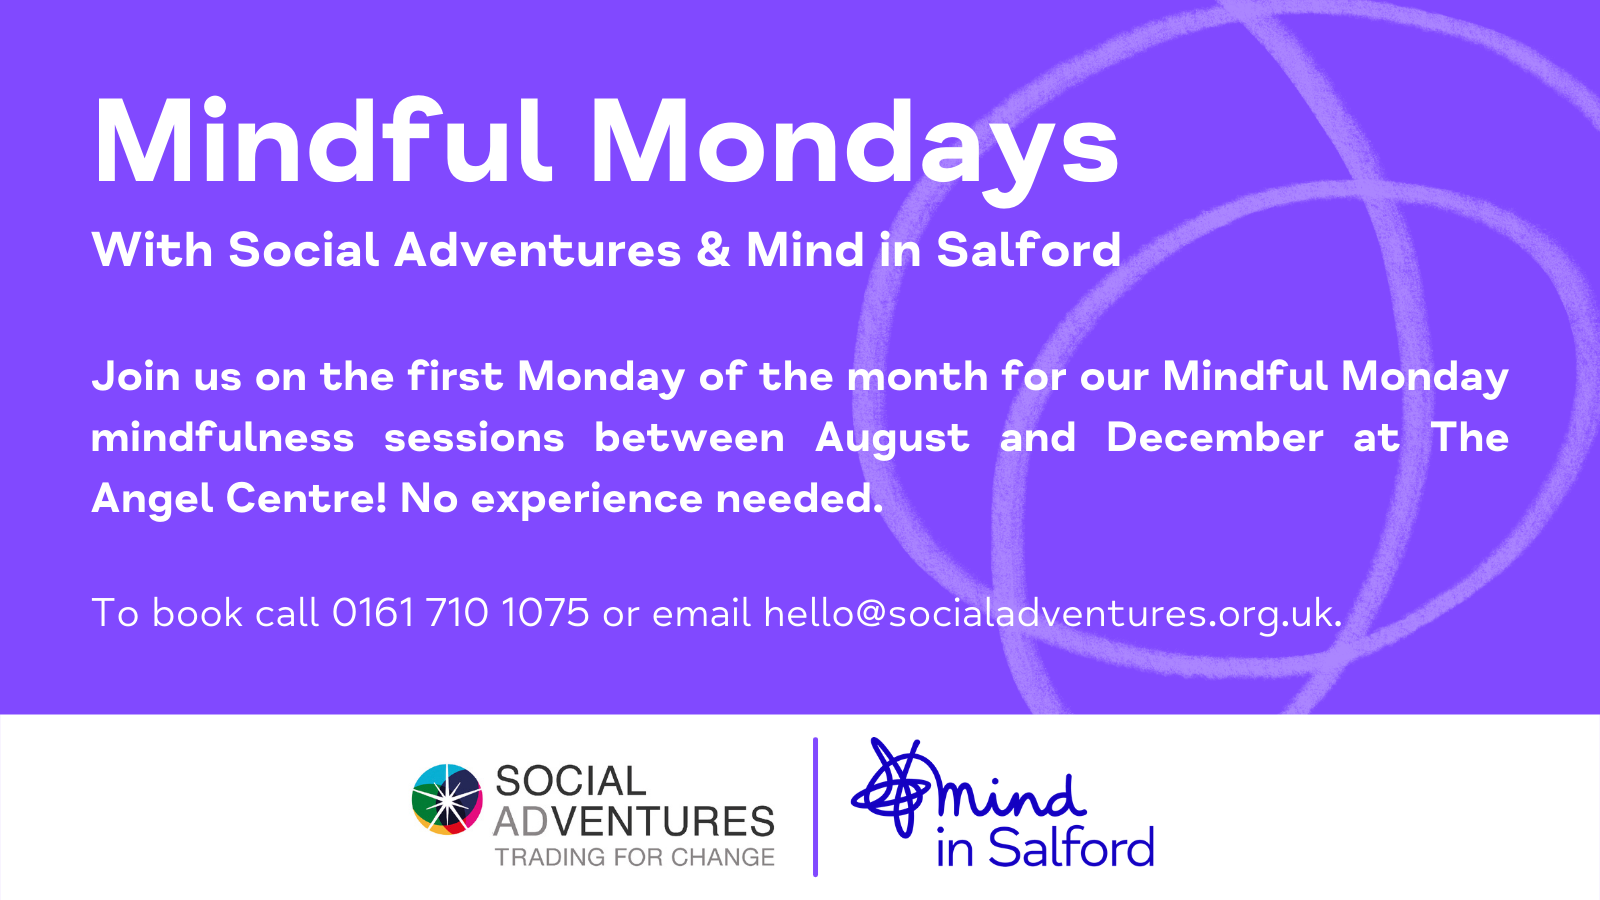 Mindful Mondays with social adventures and Mind in Salford. Join us on the first monday of the month for our mindful monday mindfulness sessions. No experience needed. To book, call 0161 710 1075 or email hello@socialadventures.org.uk